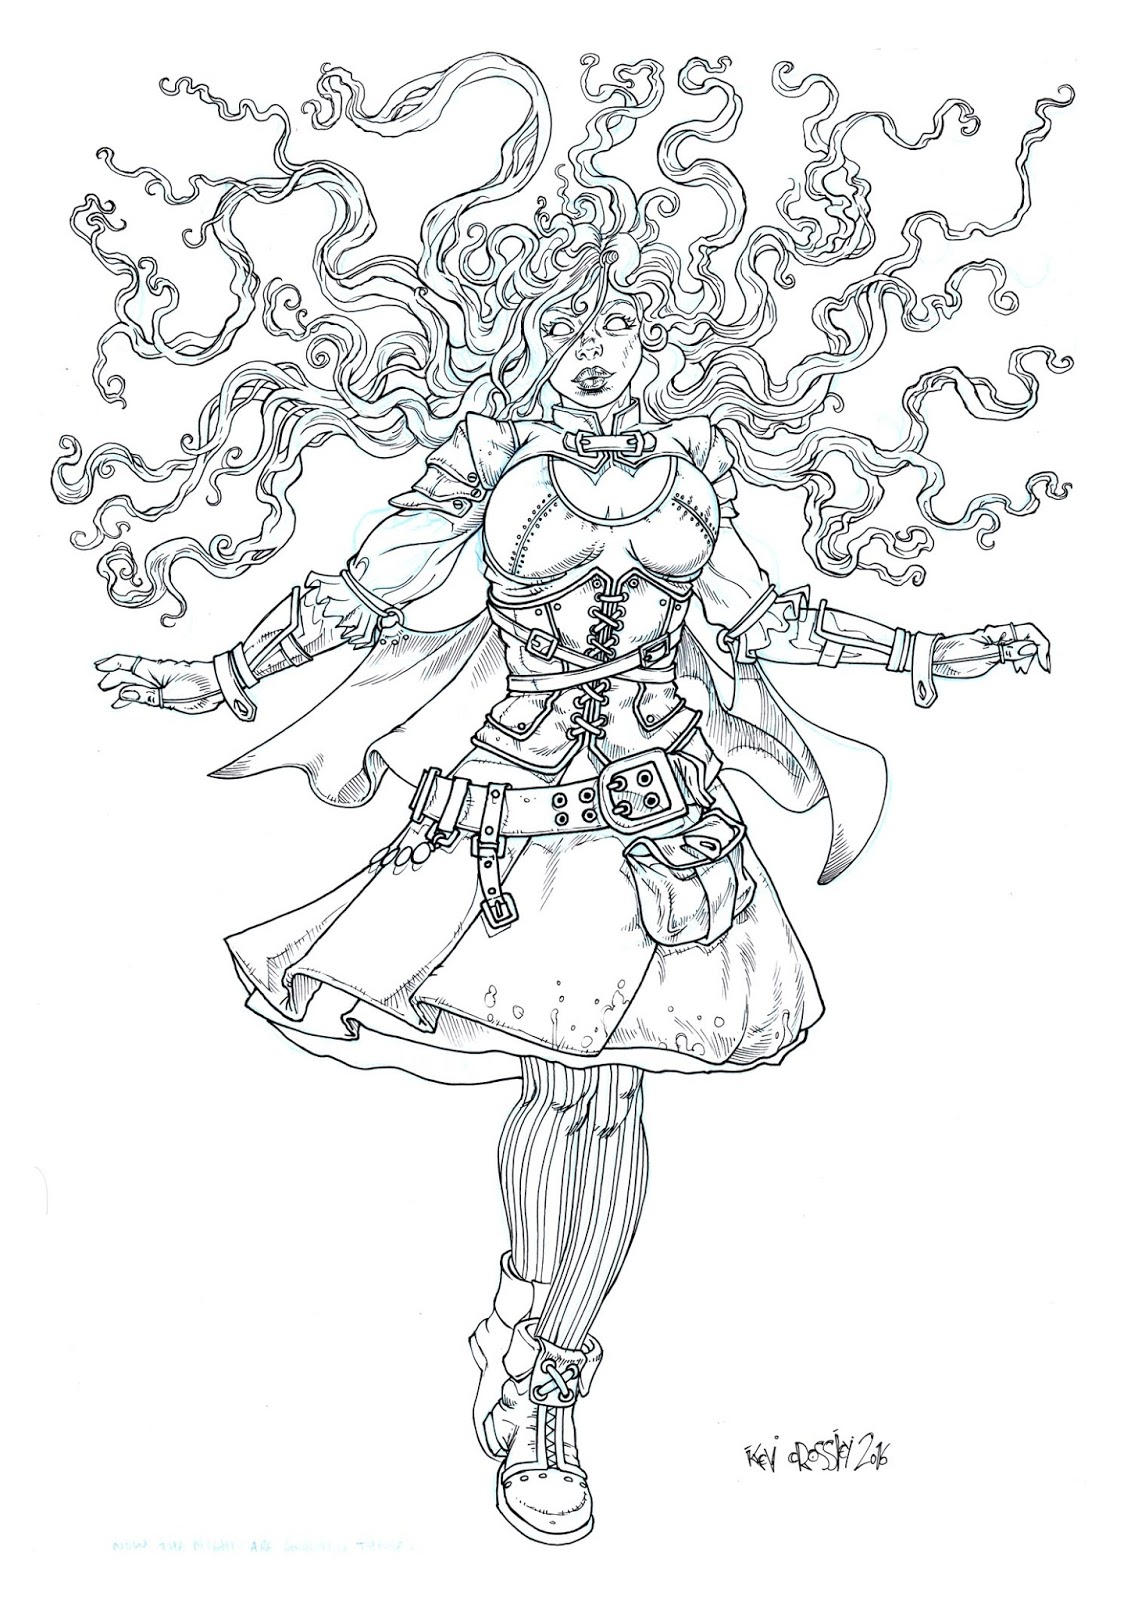 Wizard Oz Coloring Pages Wicked la la teletubby coloring pages